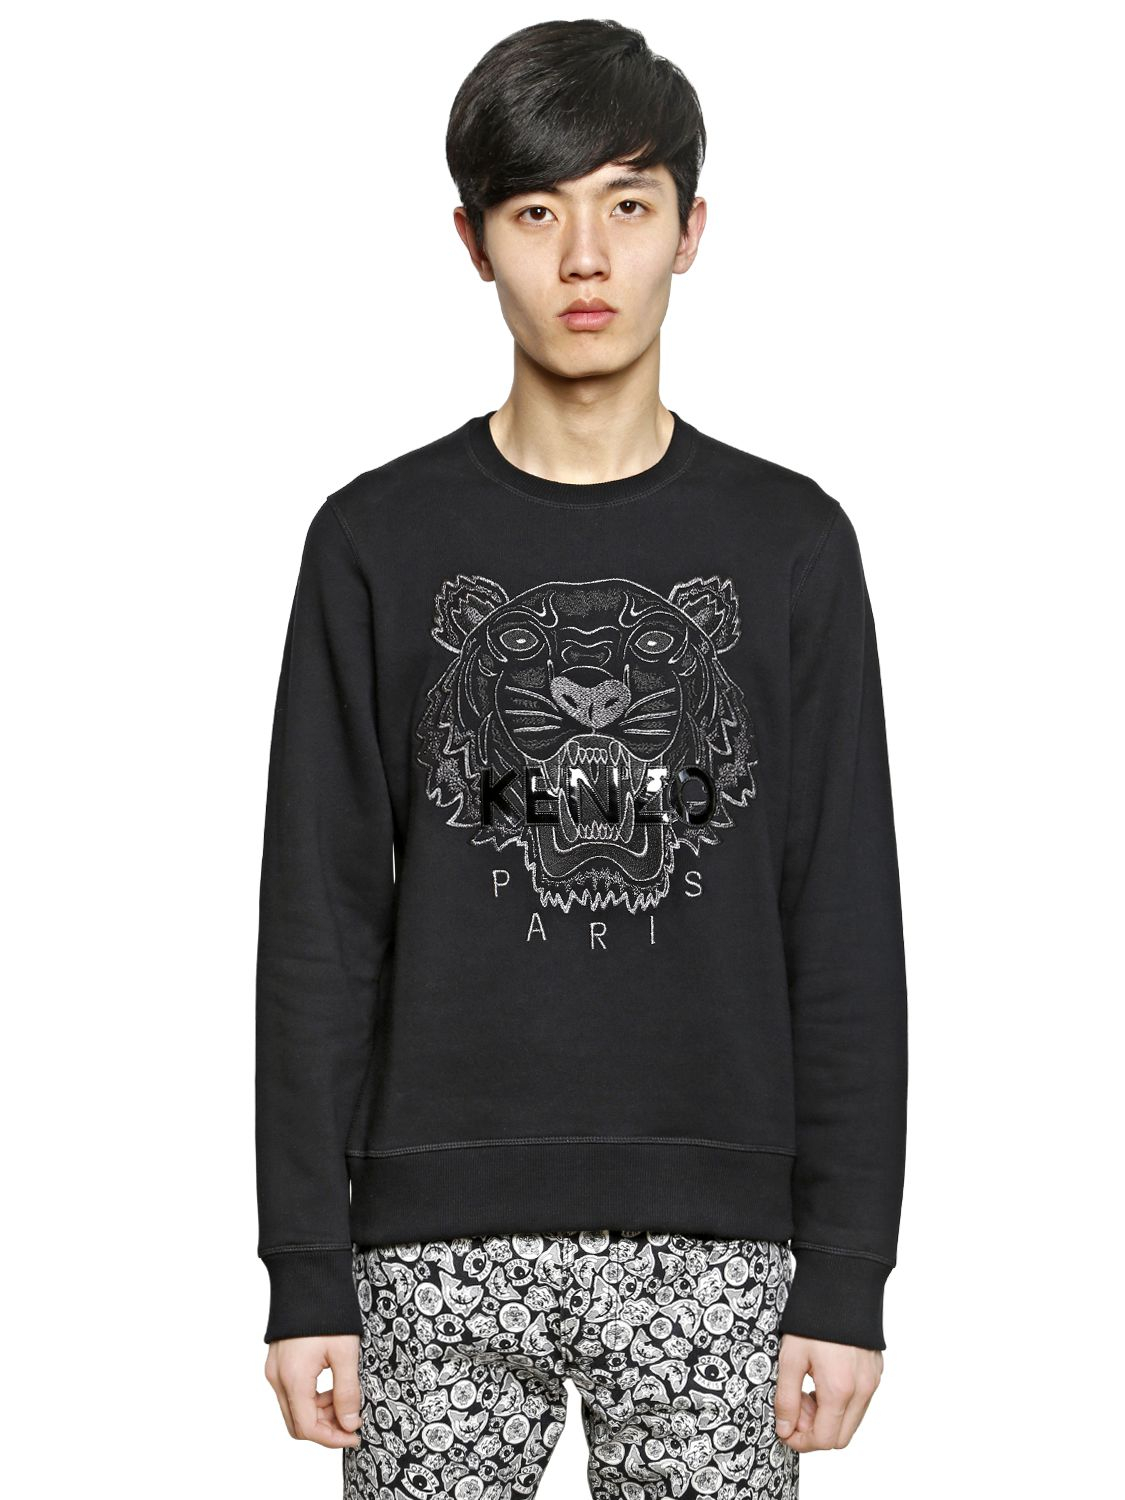 Lyst - KENZO Tiger Embroidered Cotton Sweatshirt in Black for Men 43cc1b390